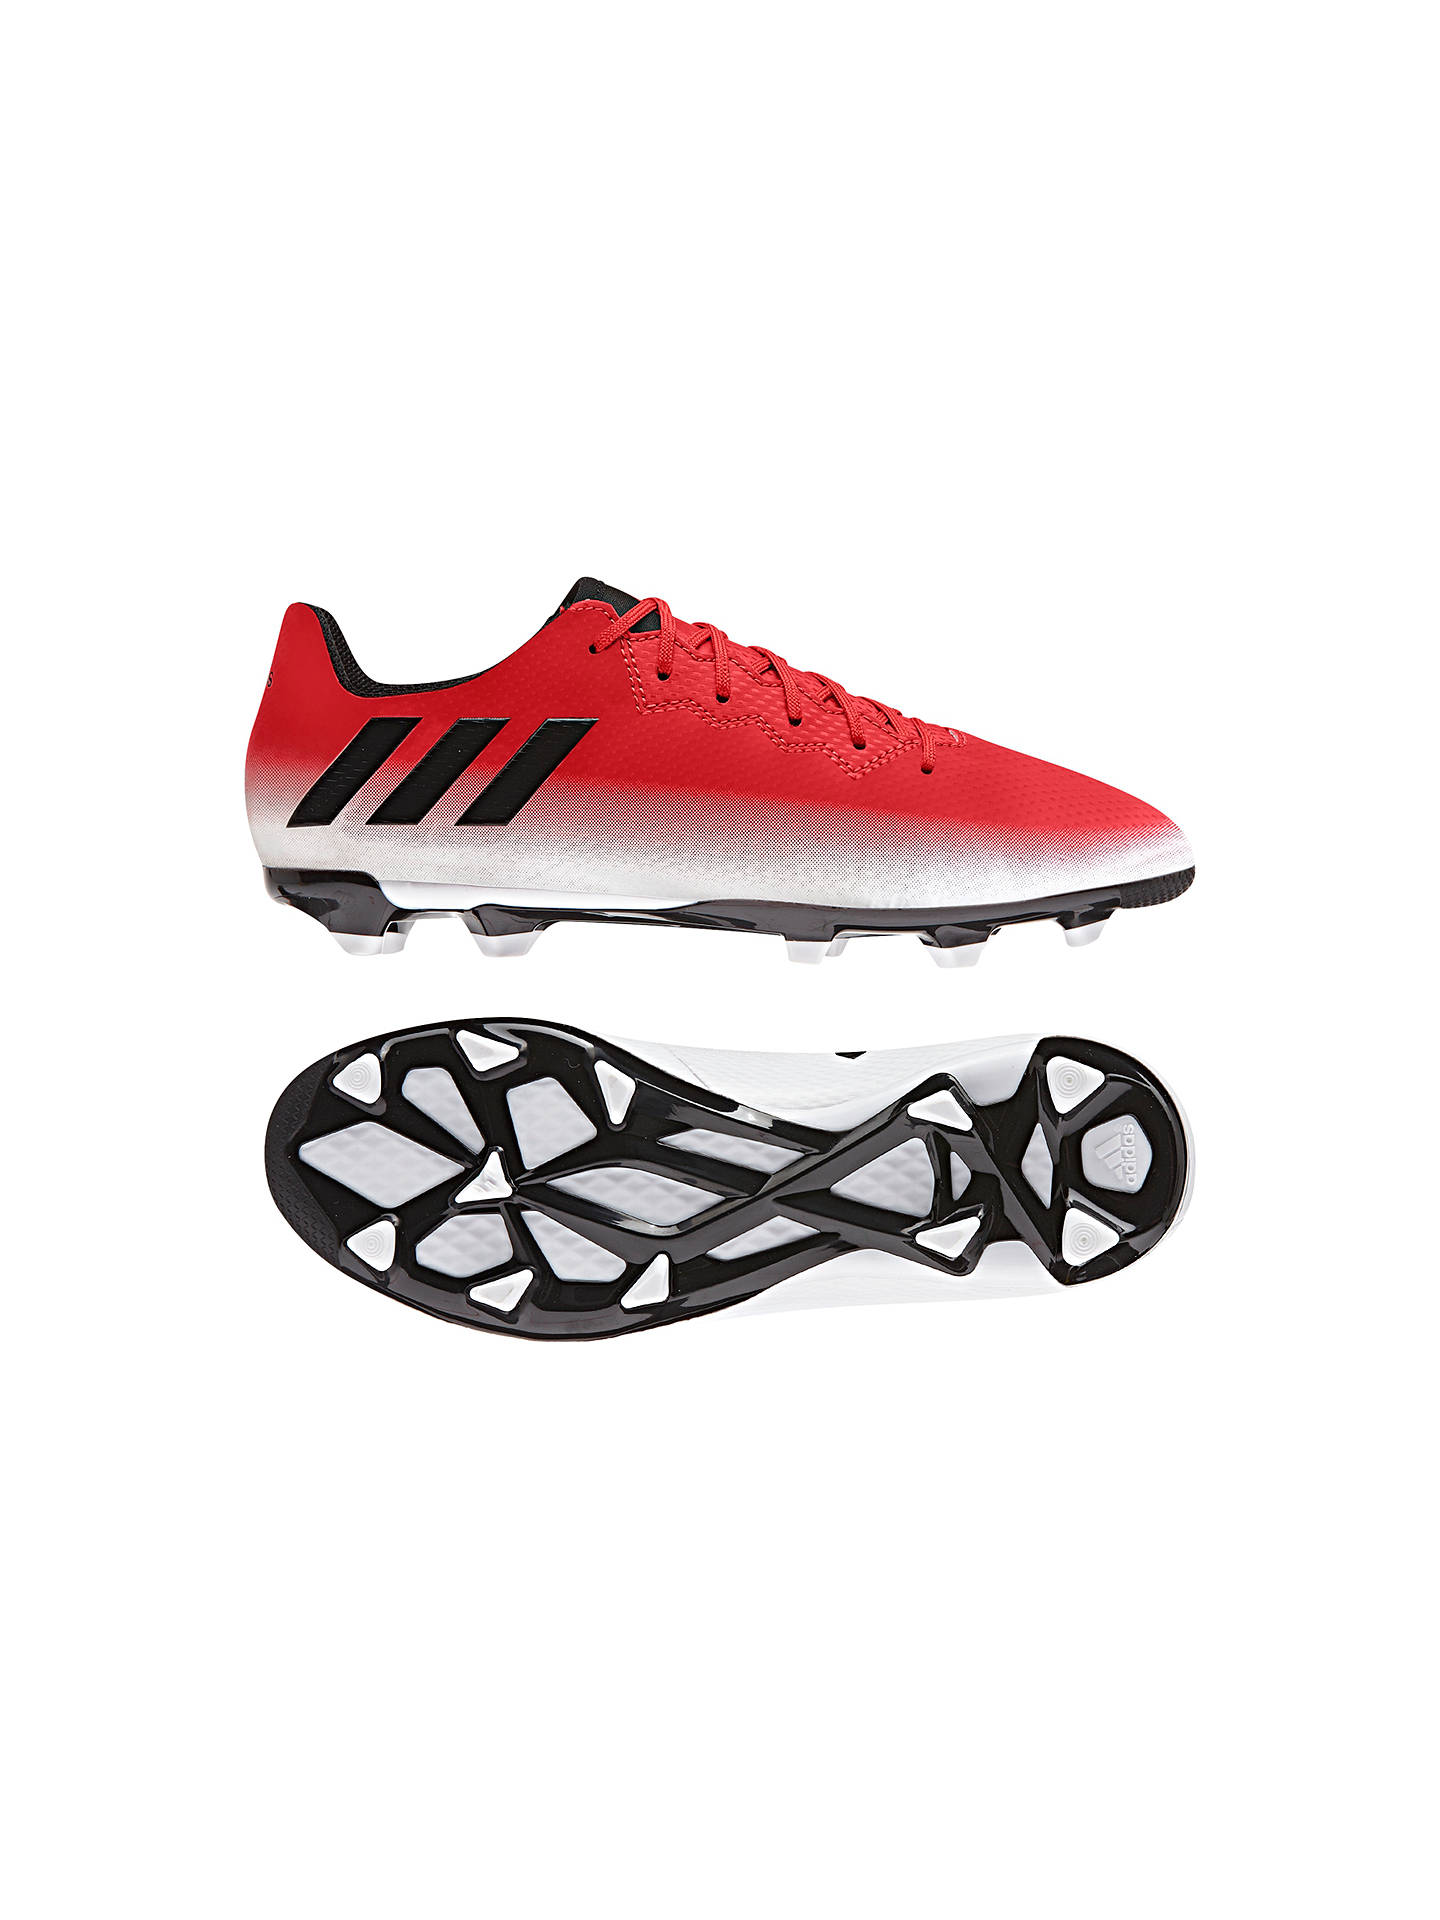 69a85d2aa ... Buy adidas Children s Messi 16.3 FG Football Boots